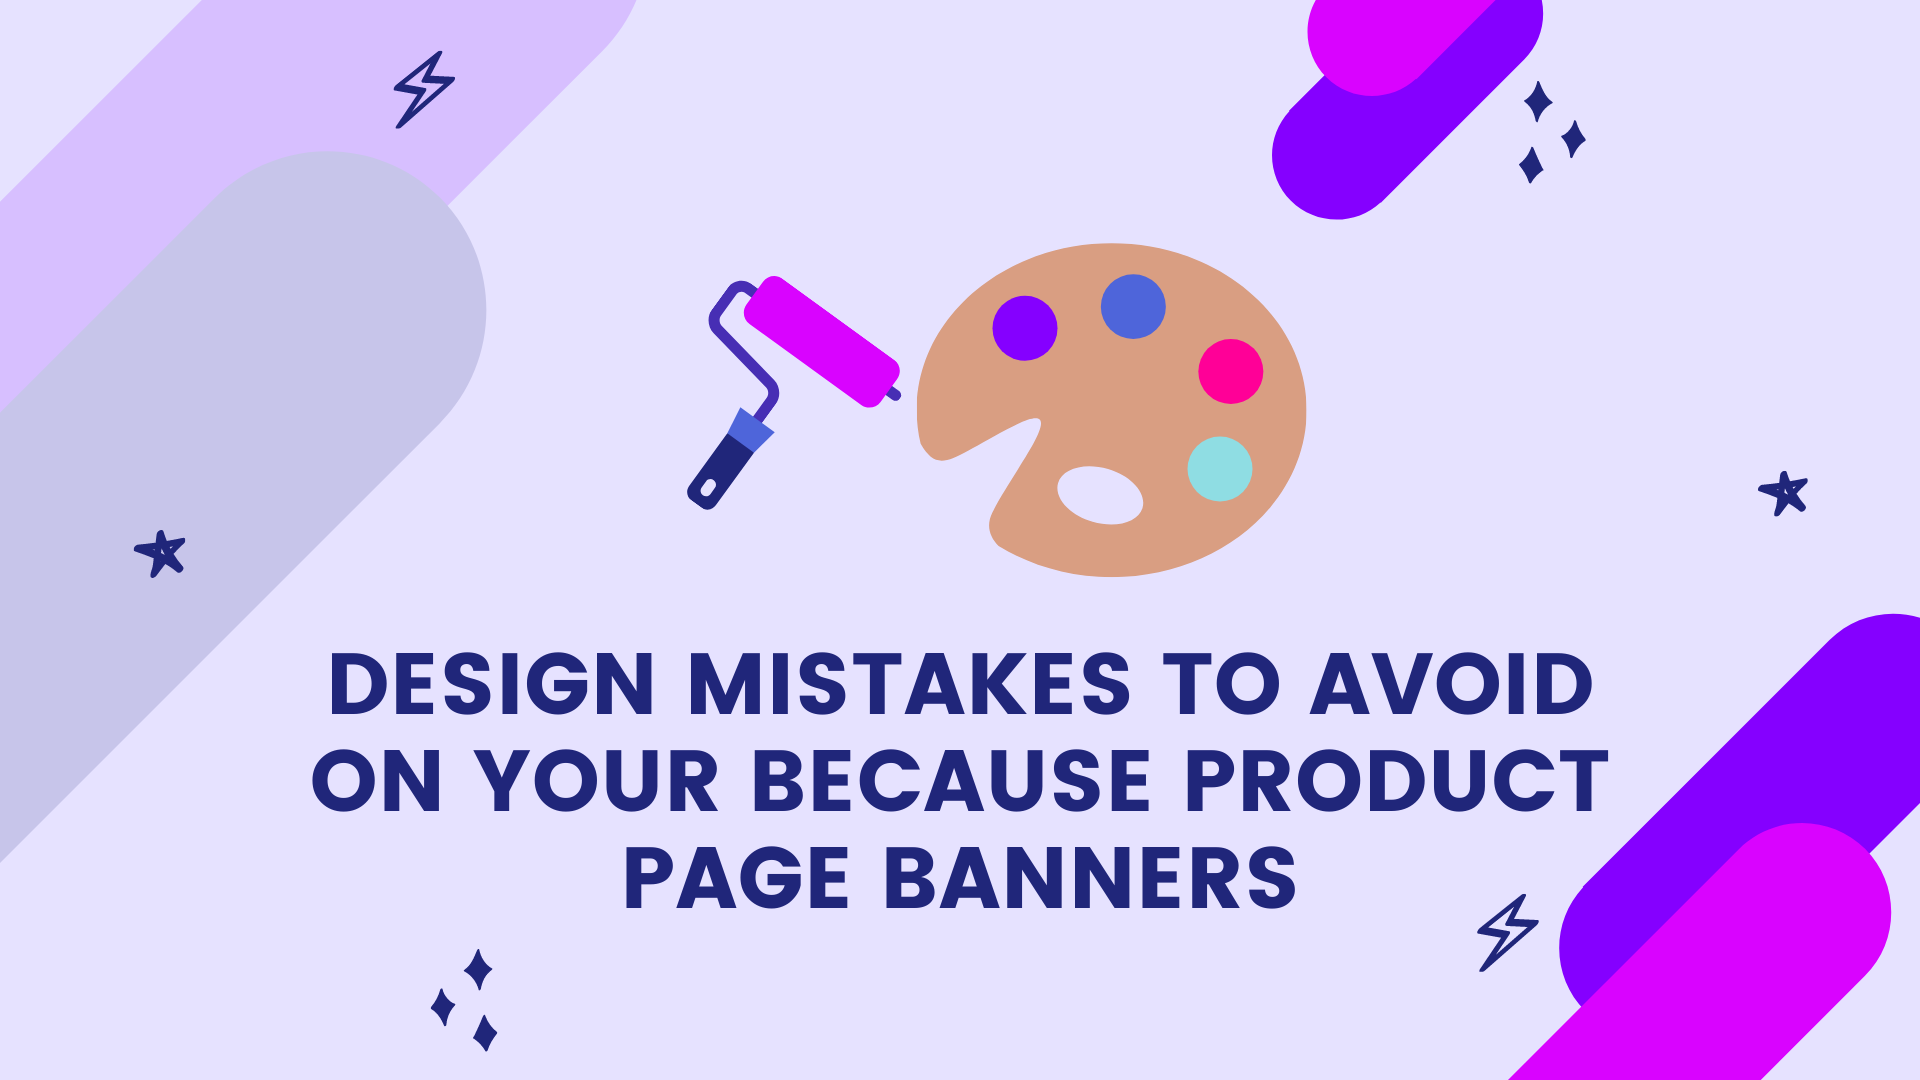 Design Mistakes to Avoid on Your Because Product Page Banners